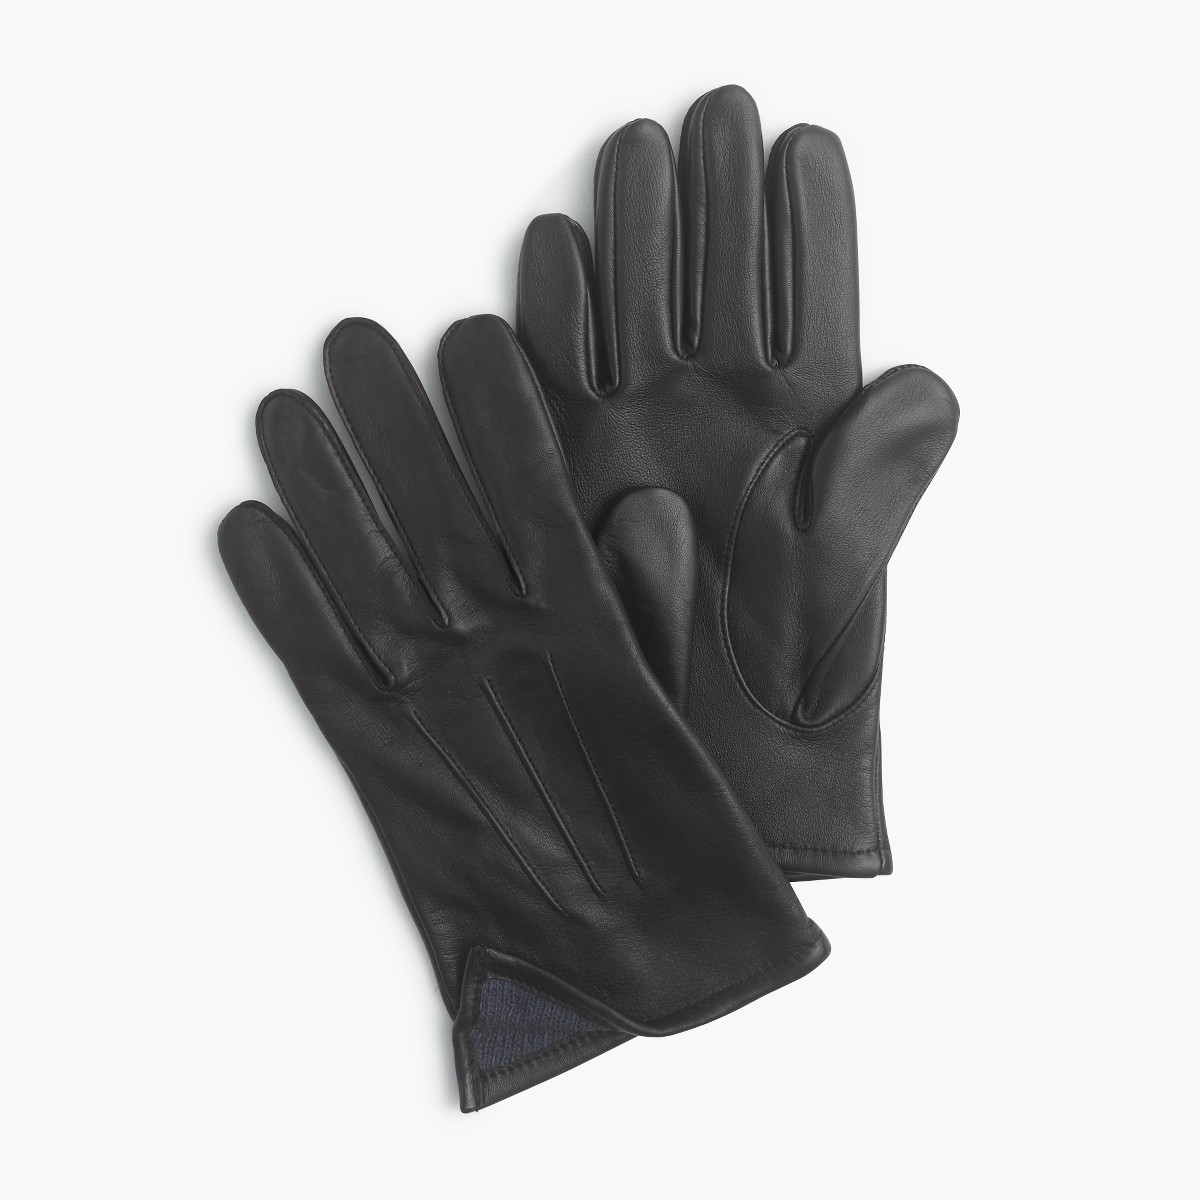 Mens gloves for smartphones - Cashmere Lined Leather Smartphone Gloves Back To Product